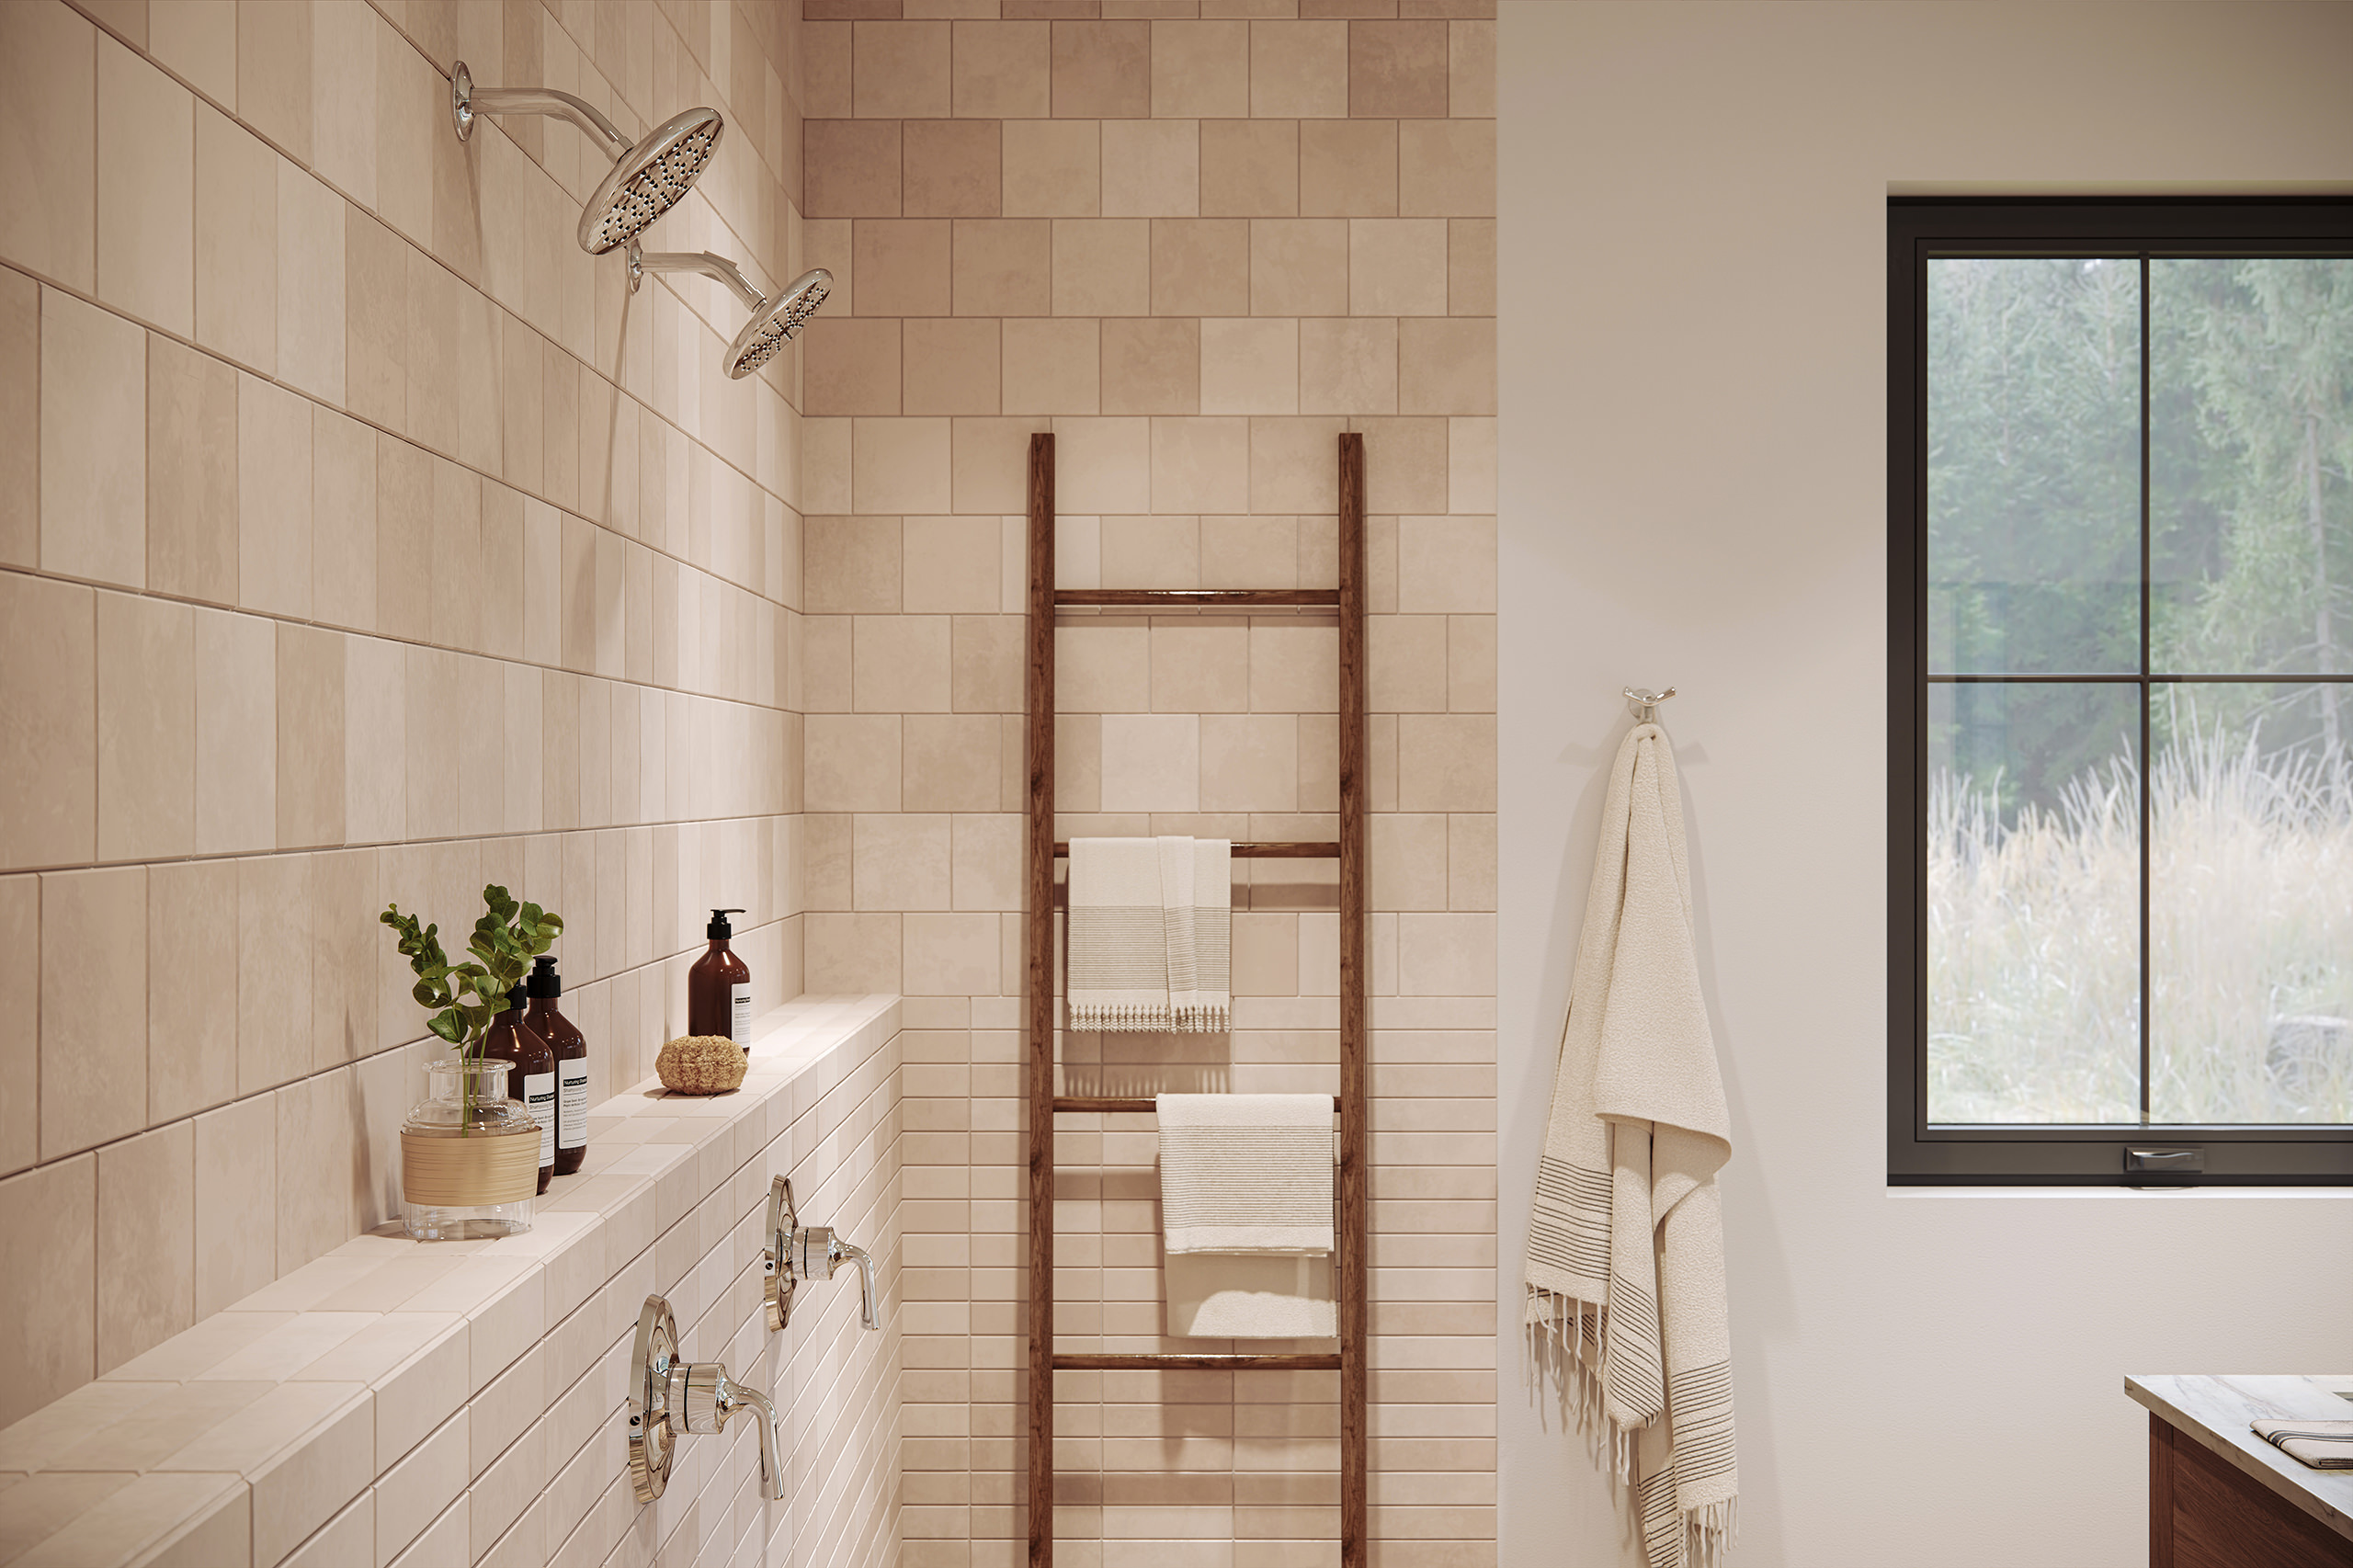 Shower interior visualization focusing on the details of Delta showerheads and controls and bathroom accessories